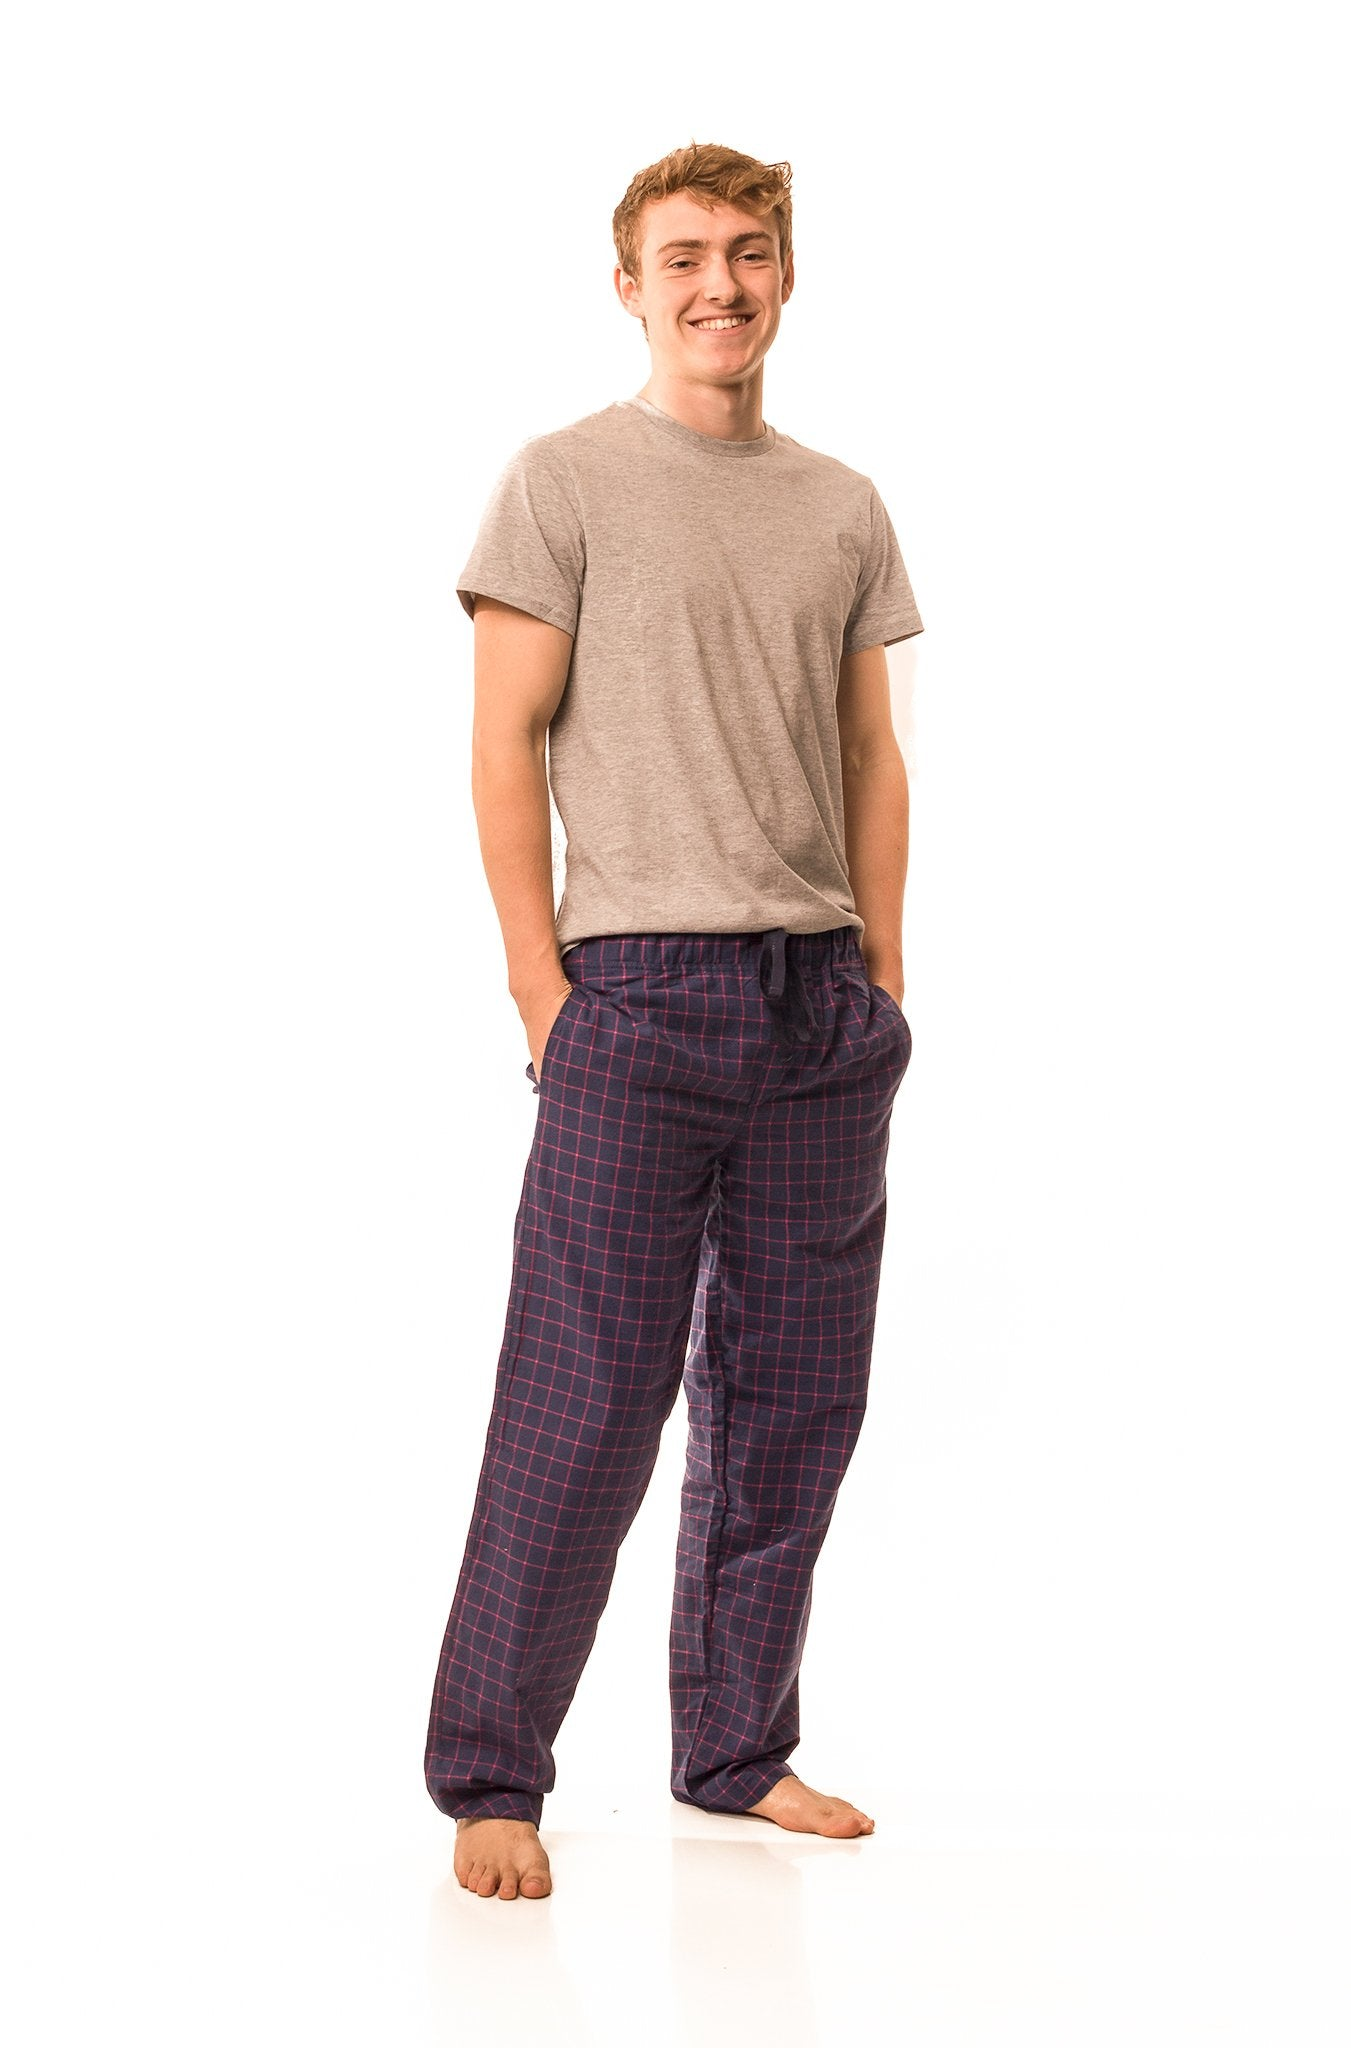 Dever navy blue/fuchsia check lounge pants - Men's